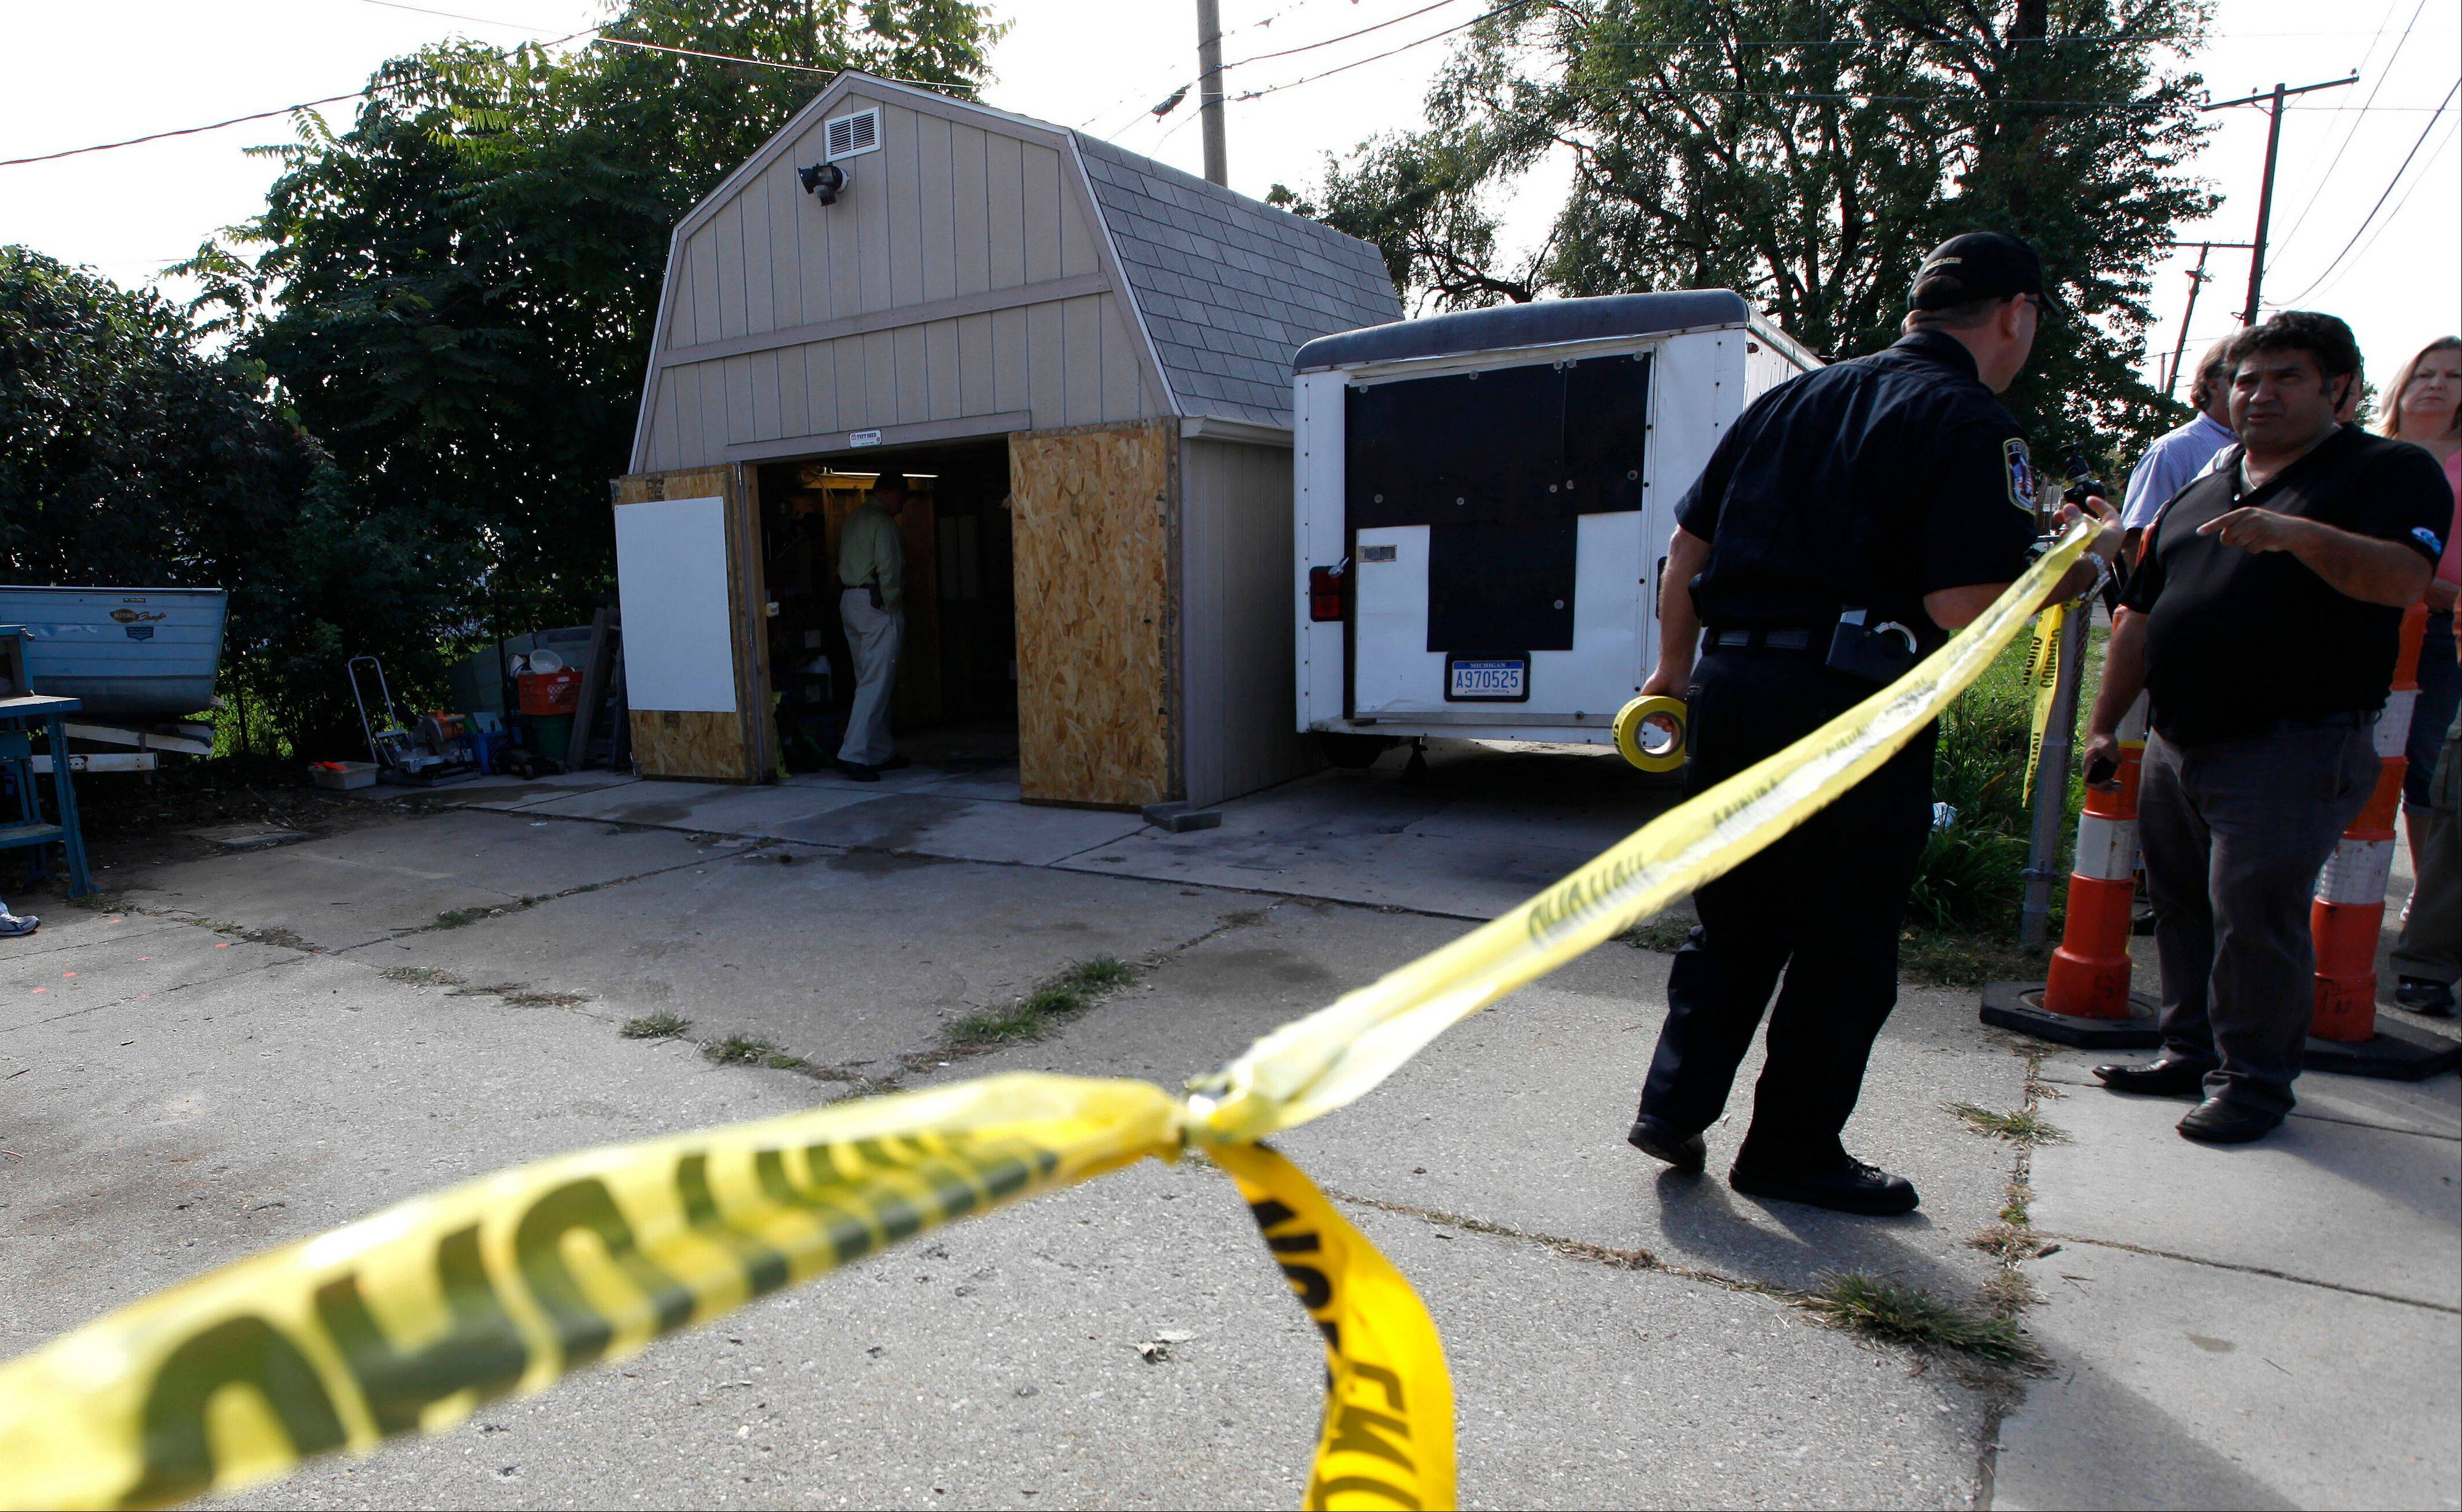 Police tape blocks a driveway where authorities drilled for soil samples in the floor of a shed at a Roseville, Mich.